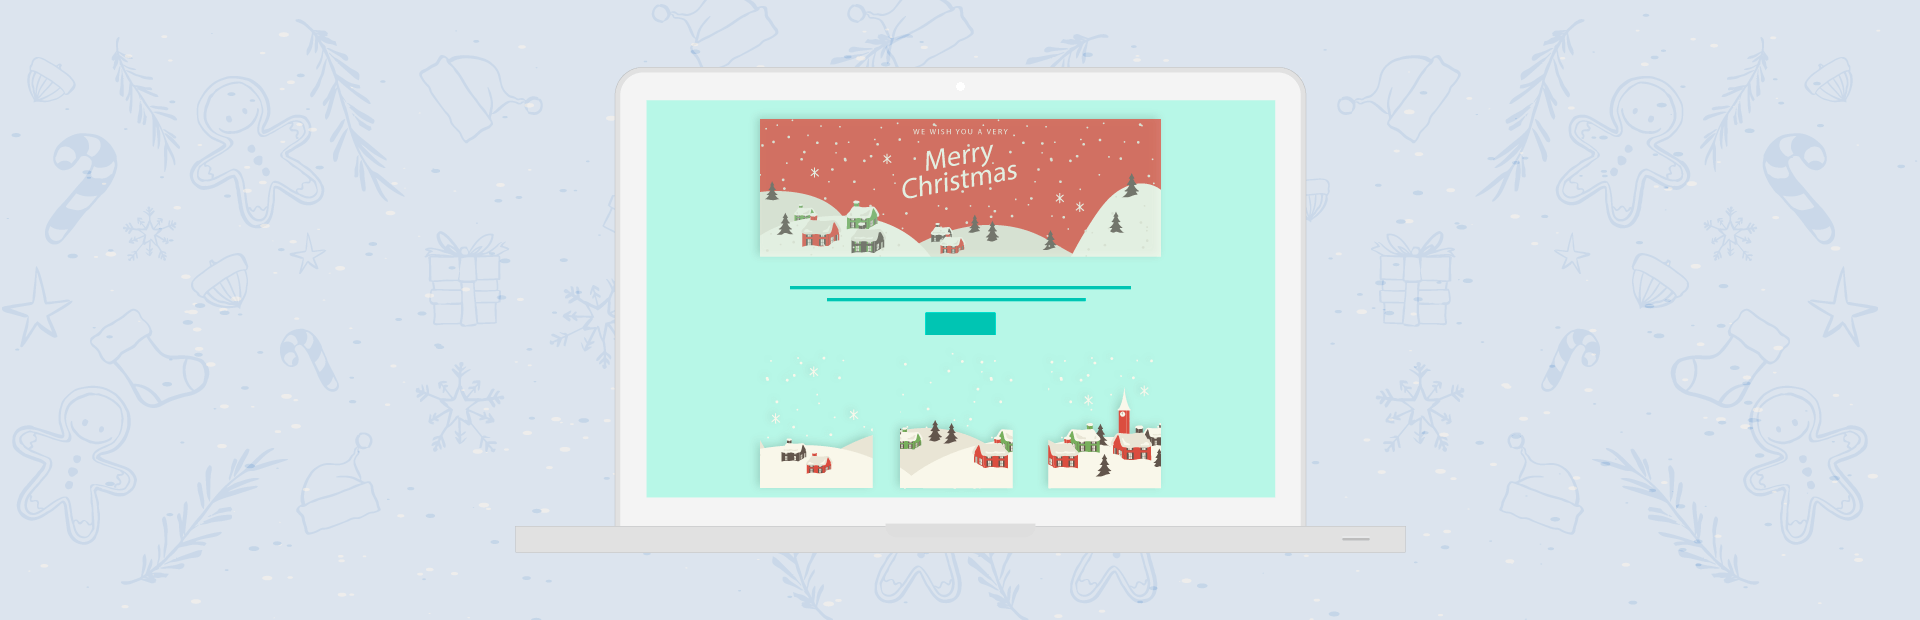 Christmas Email Marketing [Best Ideas & Examples for 30 ...